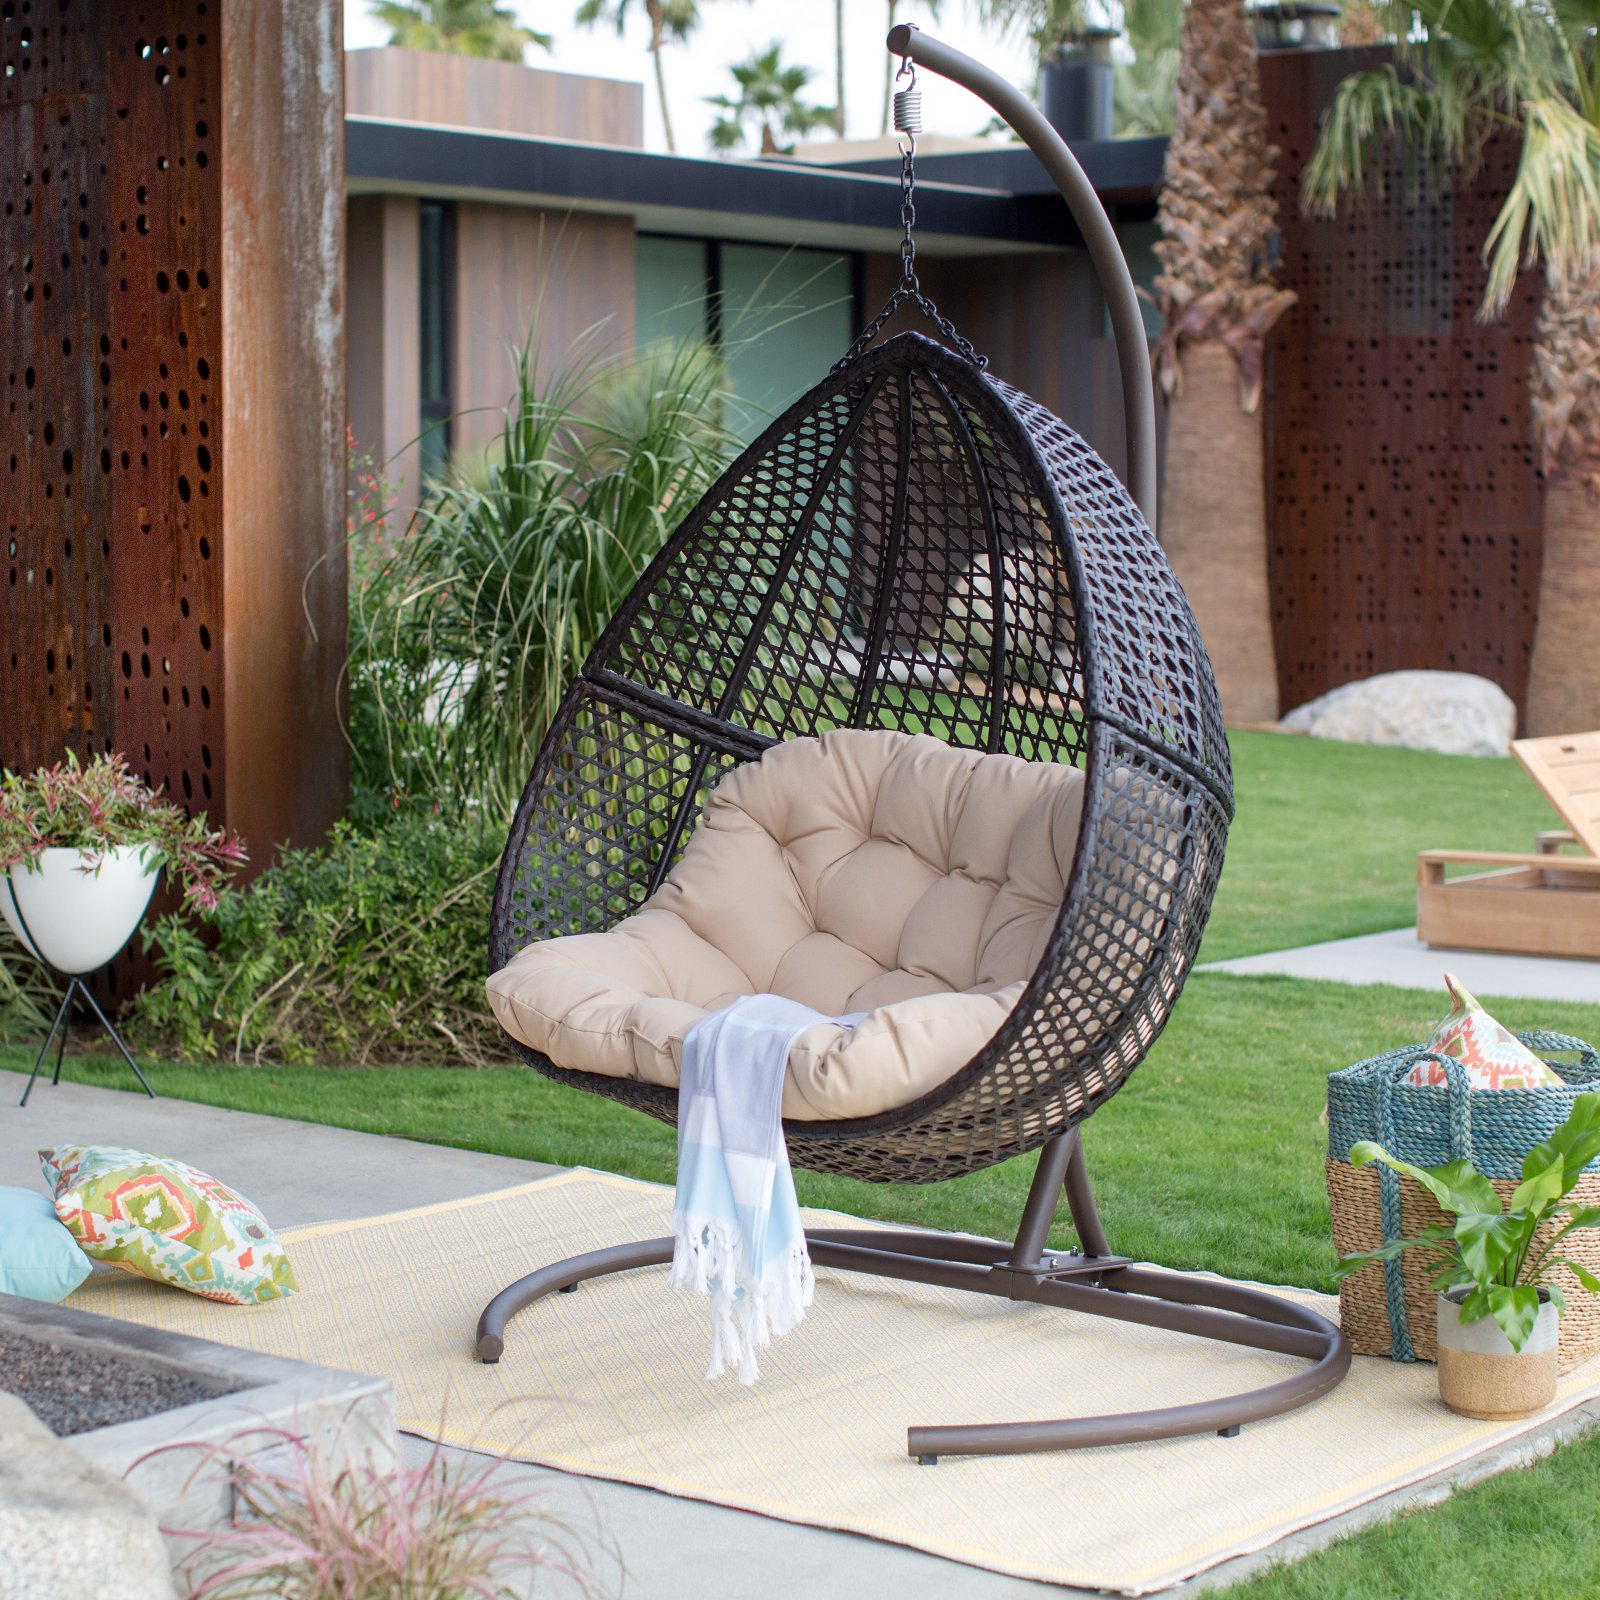 Double Egg Chair Belham Living Samos Resin Wicker Hanging Double Egg Chair With Cushion And Stand